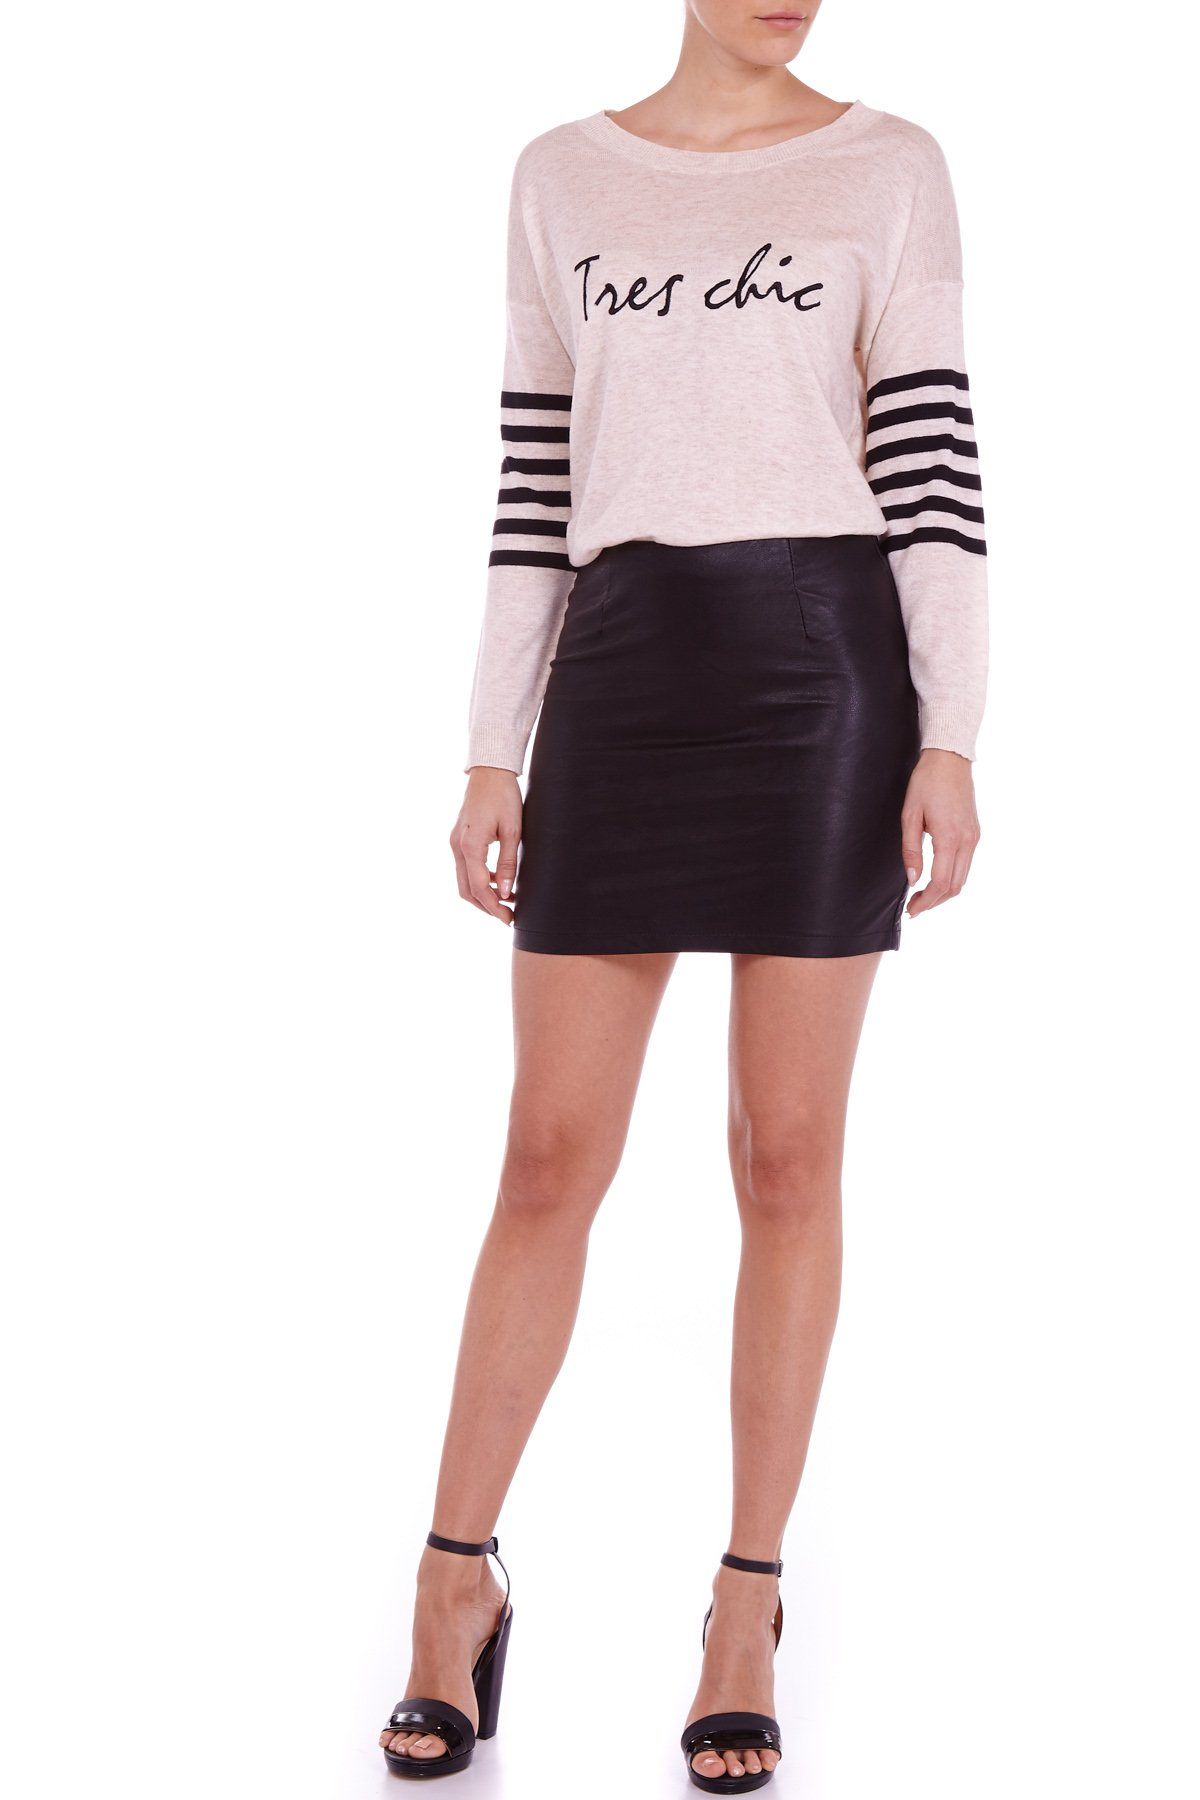 PAT14 Poppy Lux Tres Chic Sweater - Sugarhill Boutique